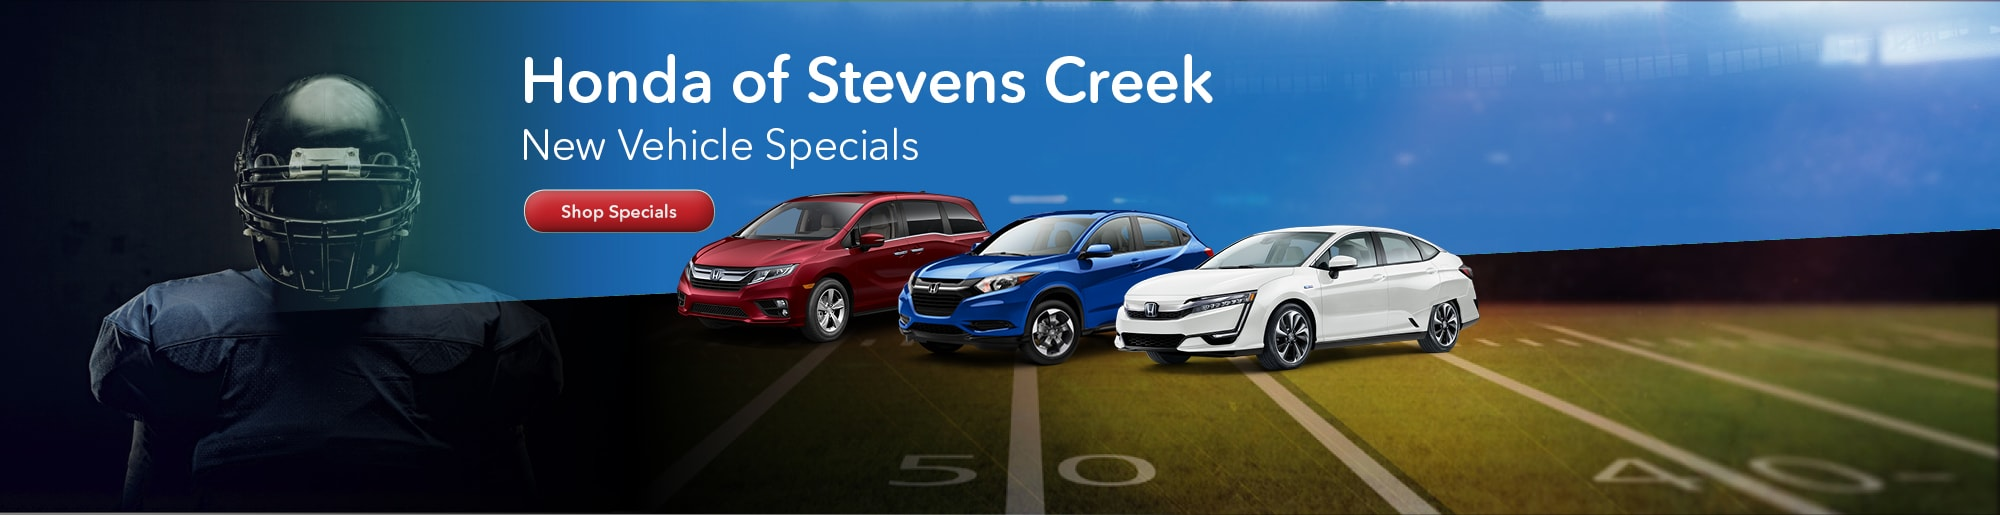 Delightful Lease A New 2018 Honda Clarity Plug In Base For $289/mo. At Honda Of Stevens  Creek